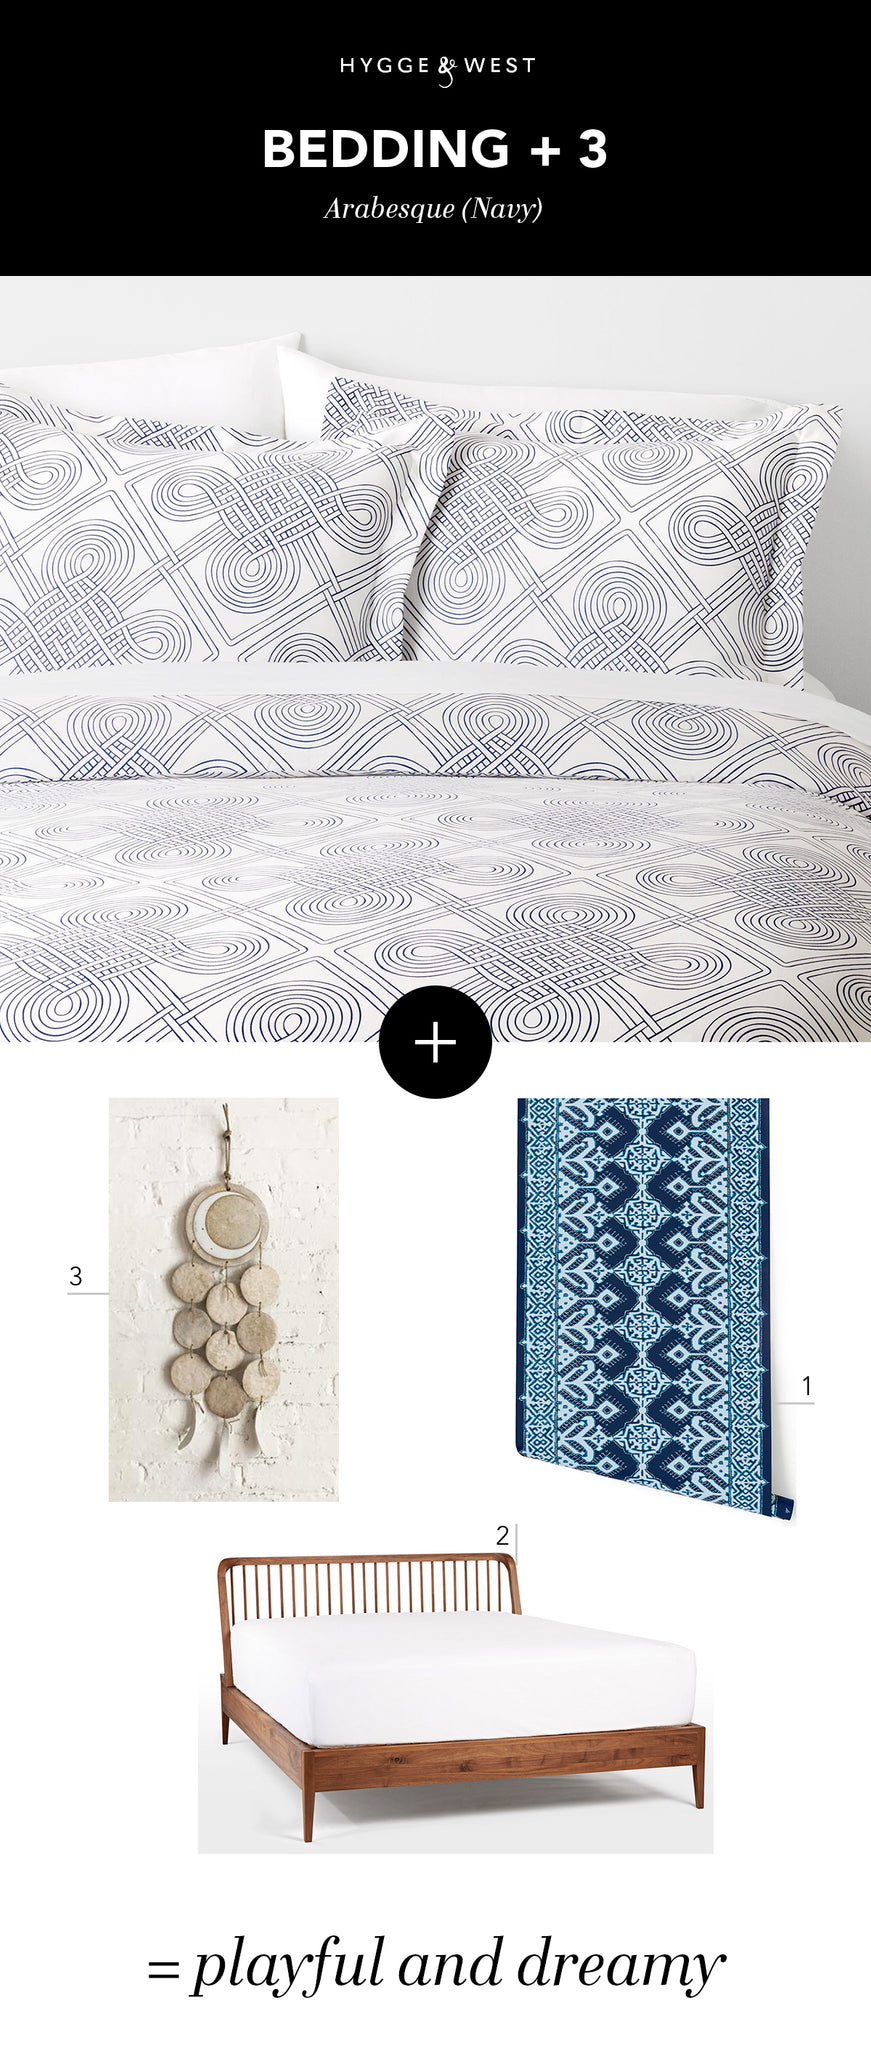 Arabesque (Navy) Bedding + Pombal (Navy/Sky) | Hygge & West